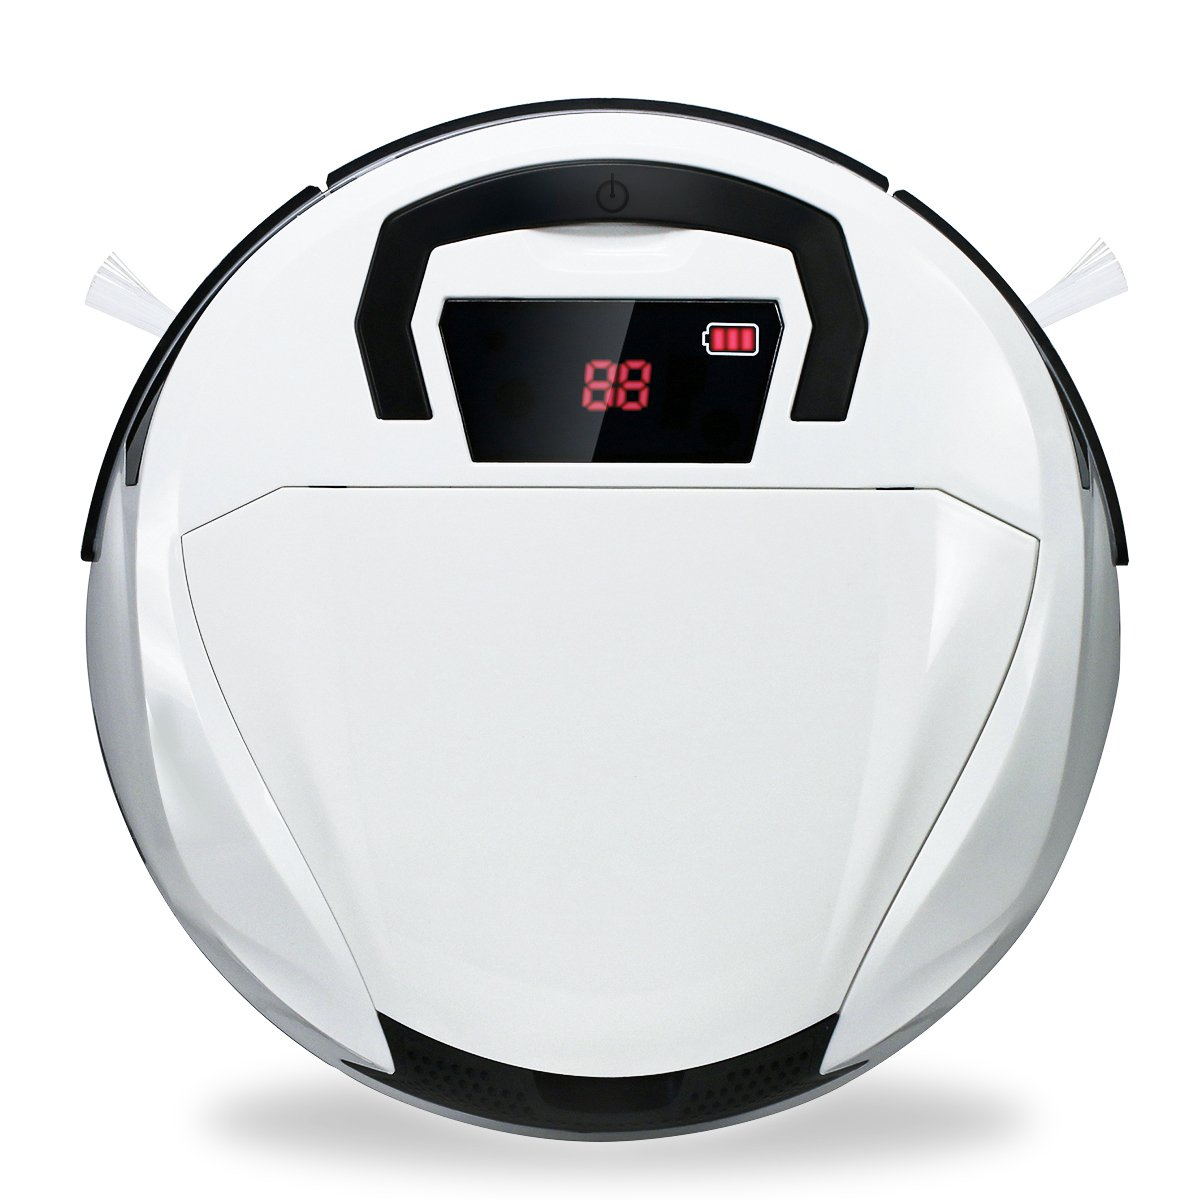 FINE DRAGON Robot Vacuum Cleaner with Portable Handle for Hardwood and Tile Floor (White B) F-AB